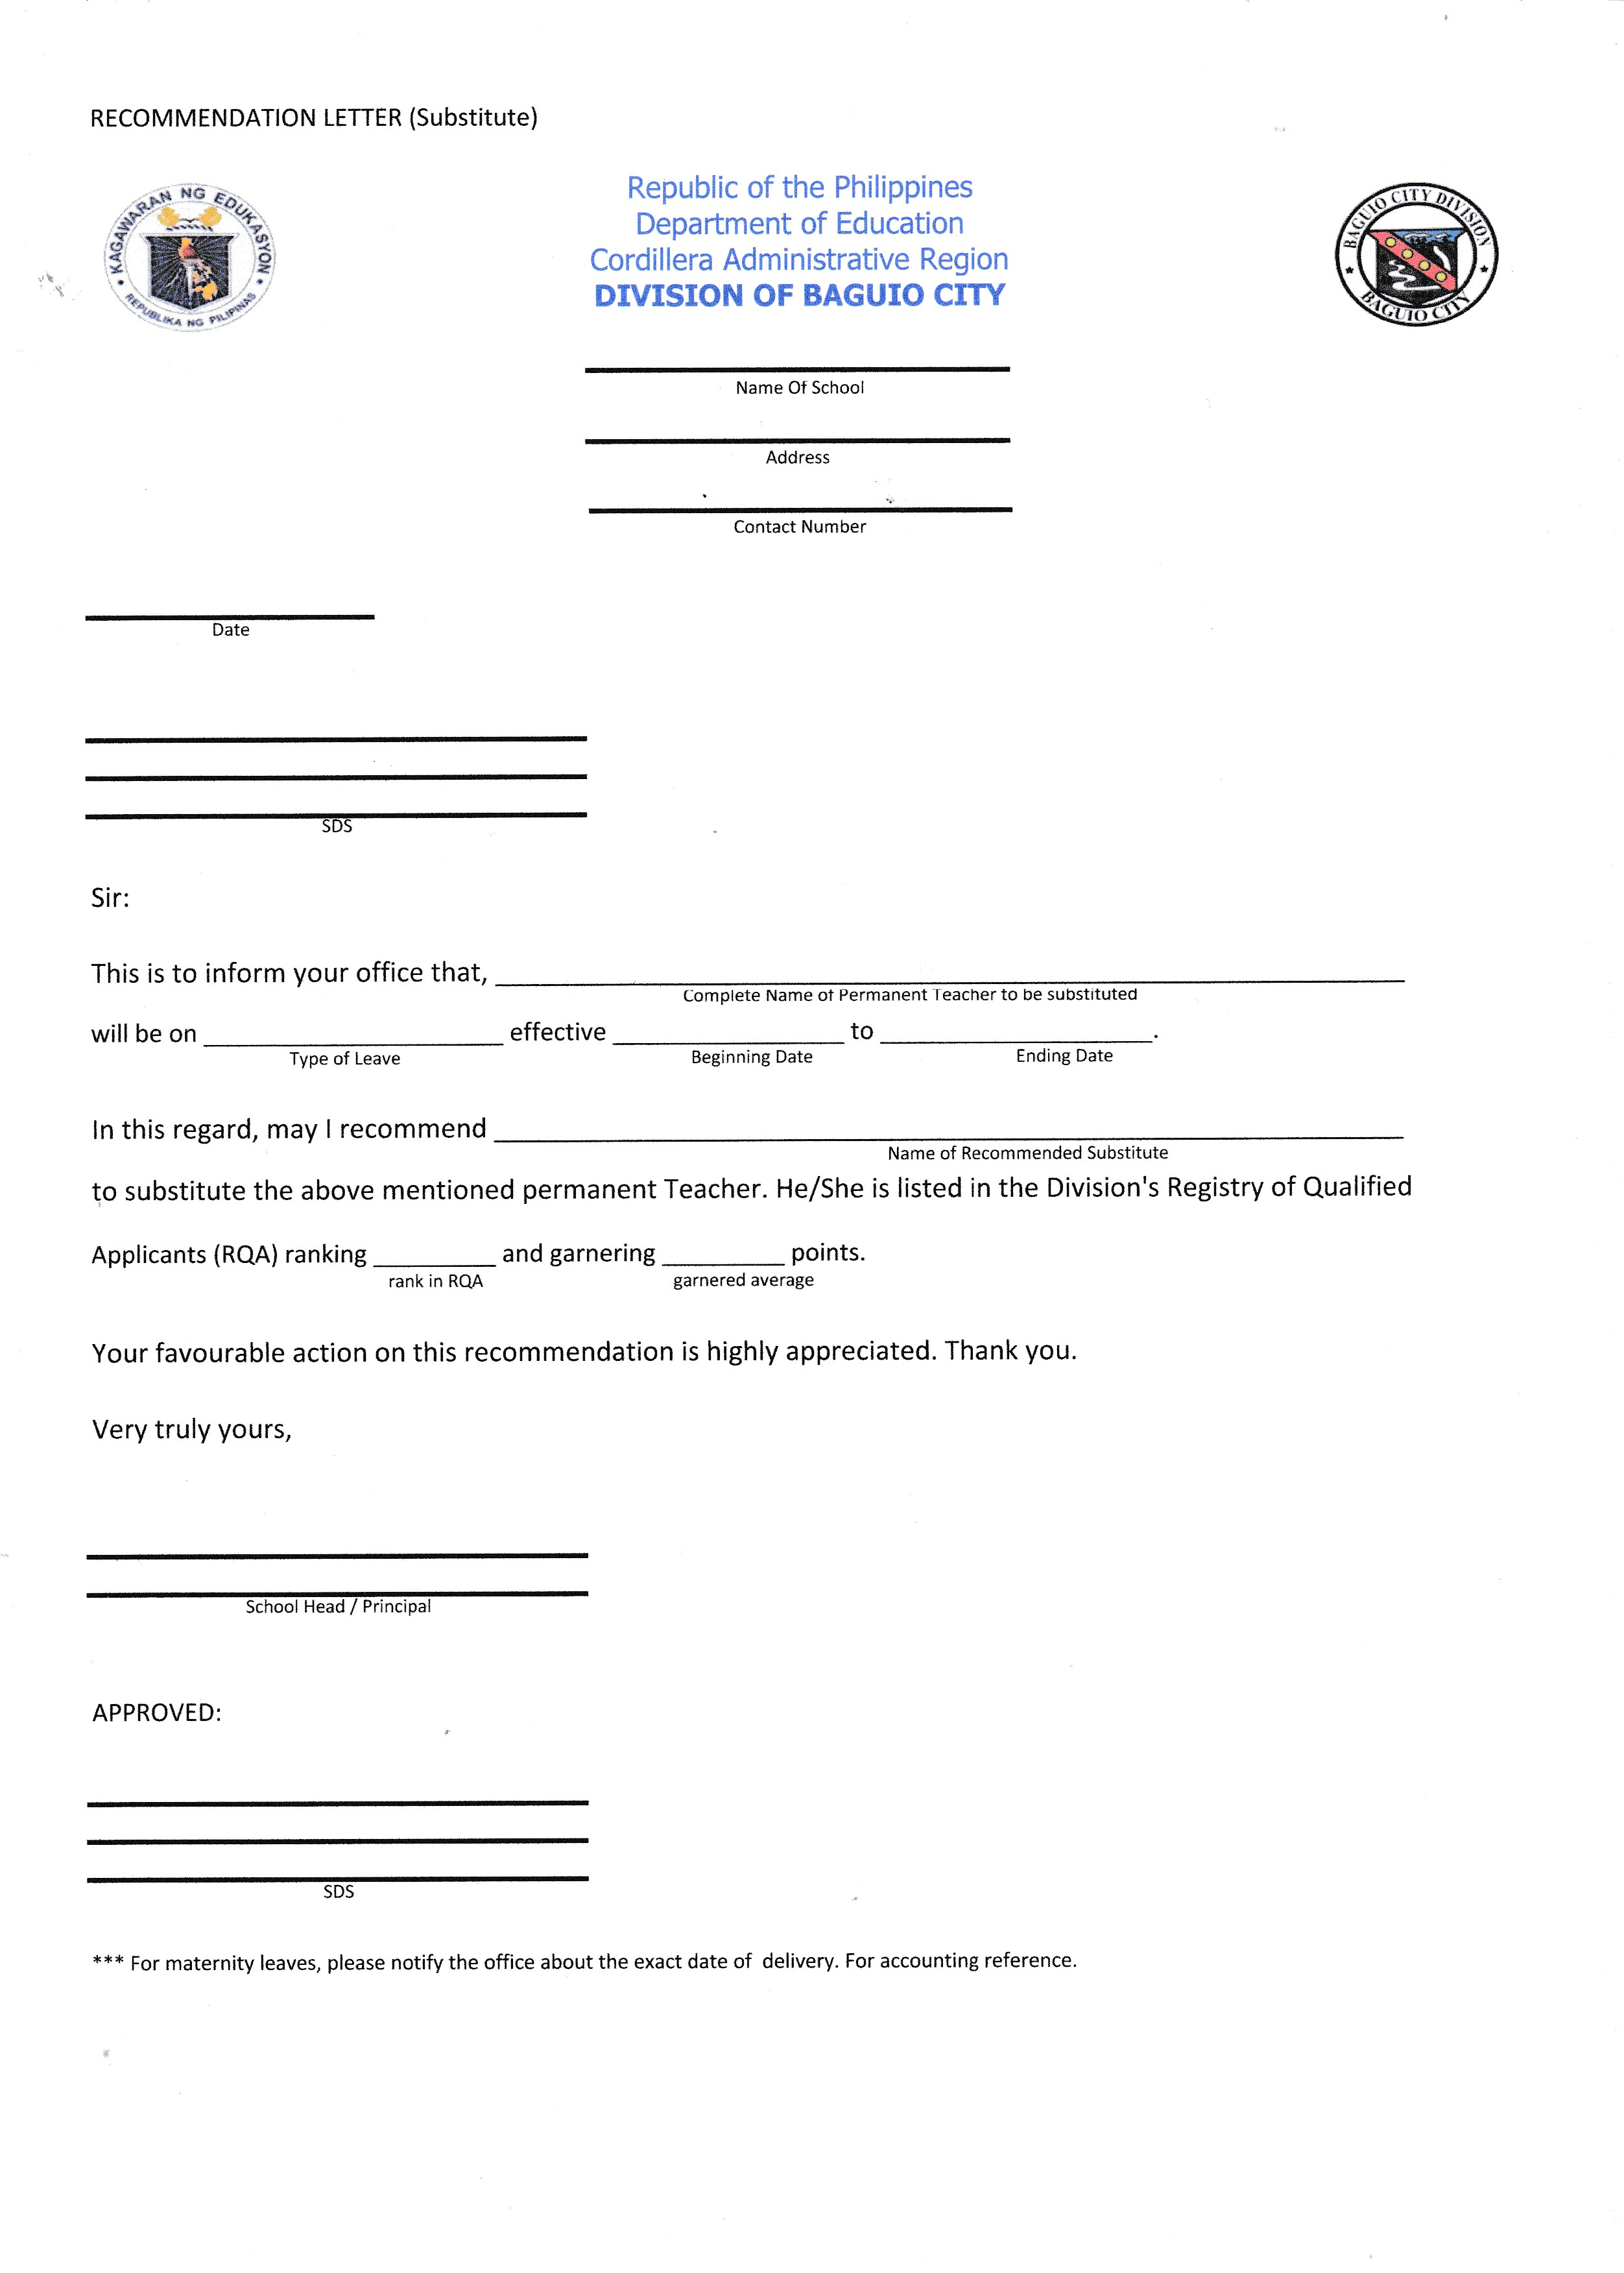 Sample Letter Of Recommendation For Substitute Teacher from depedpines.com